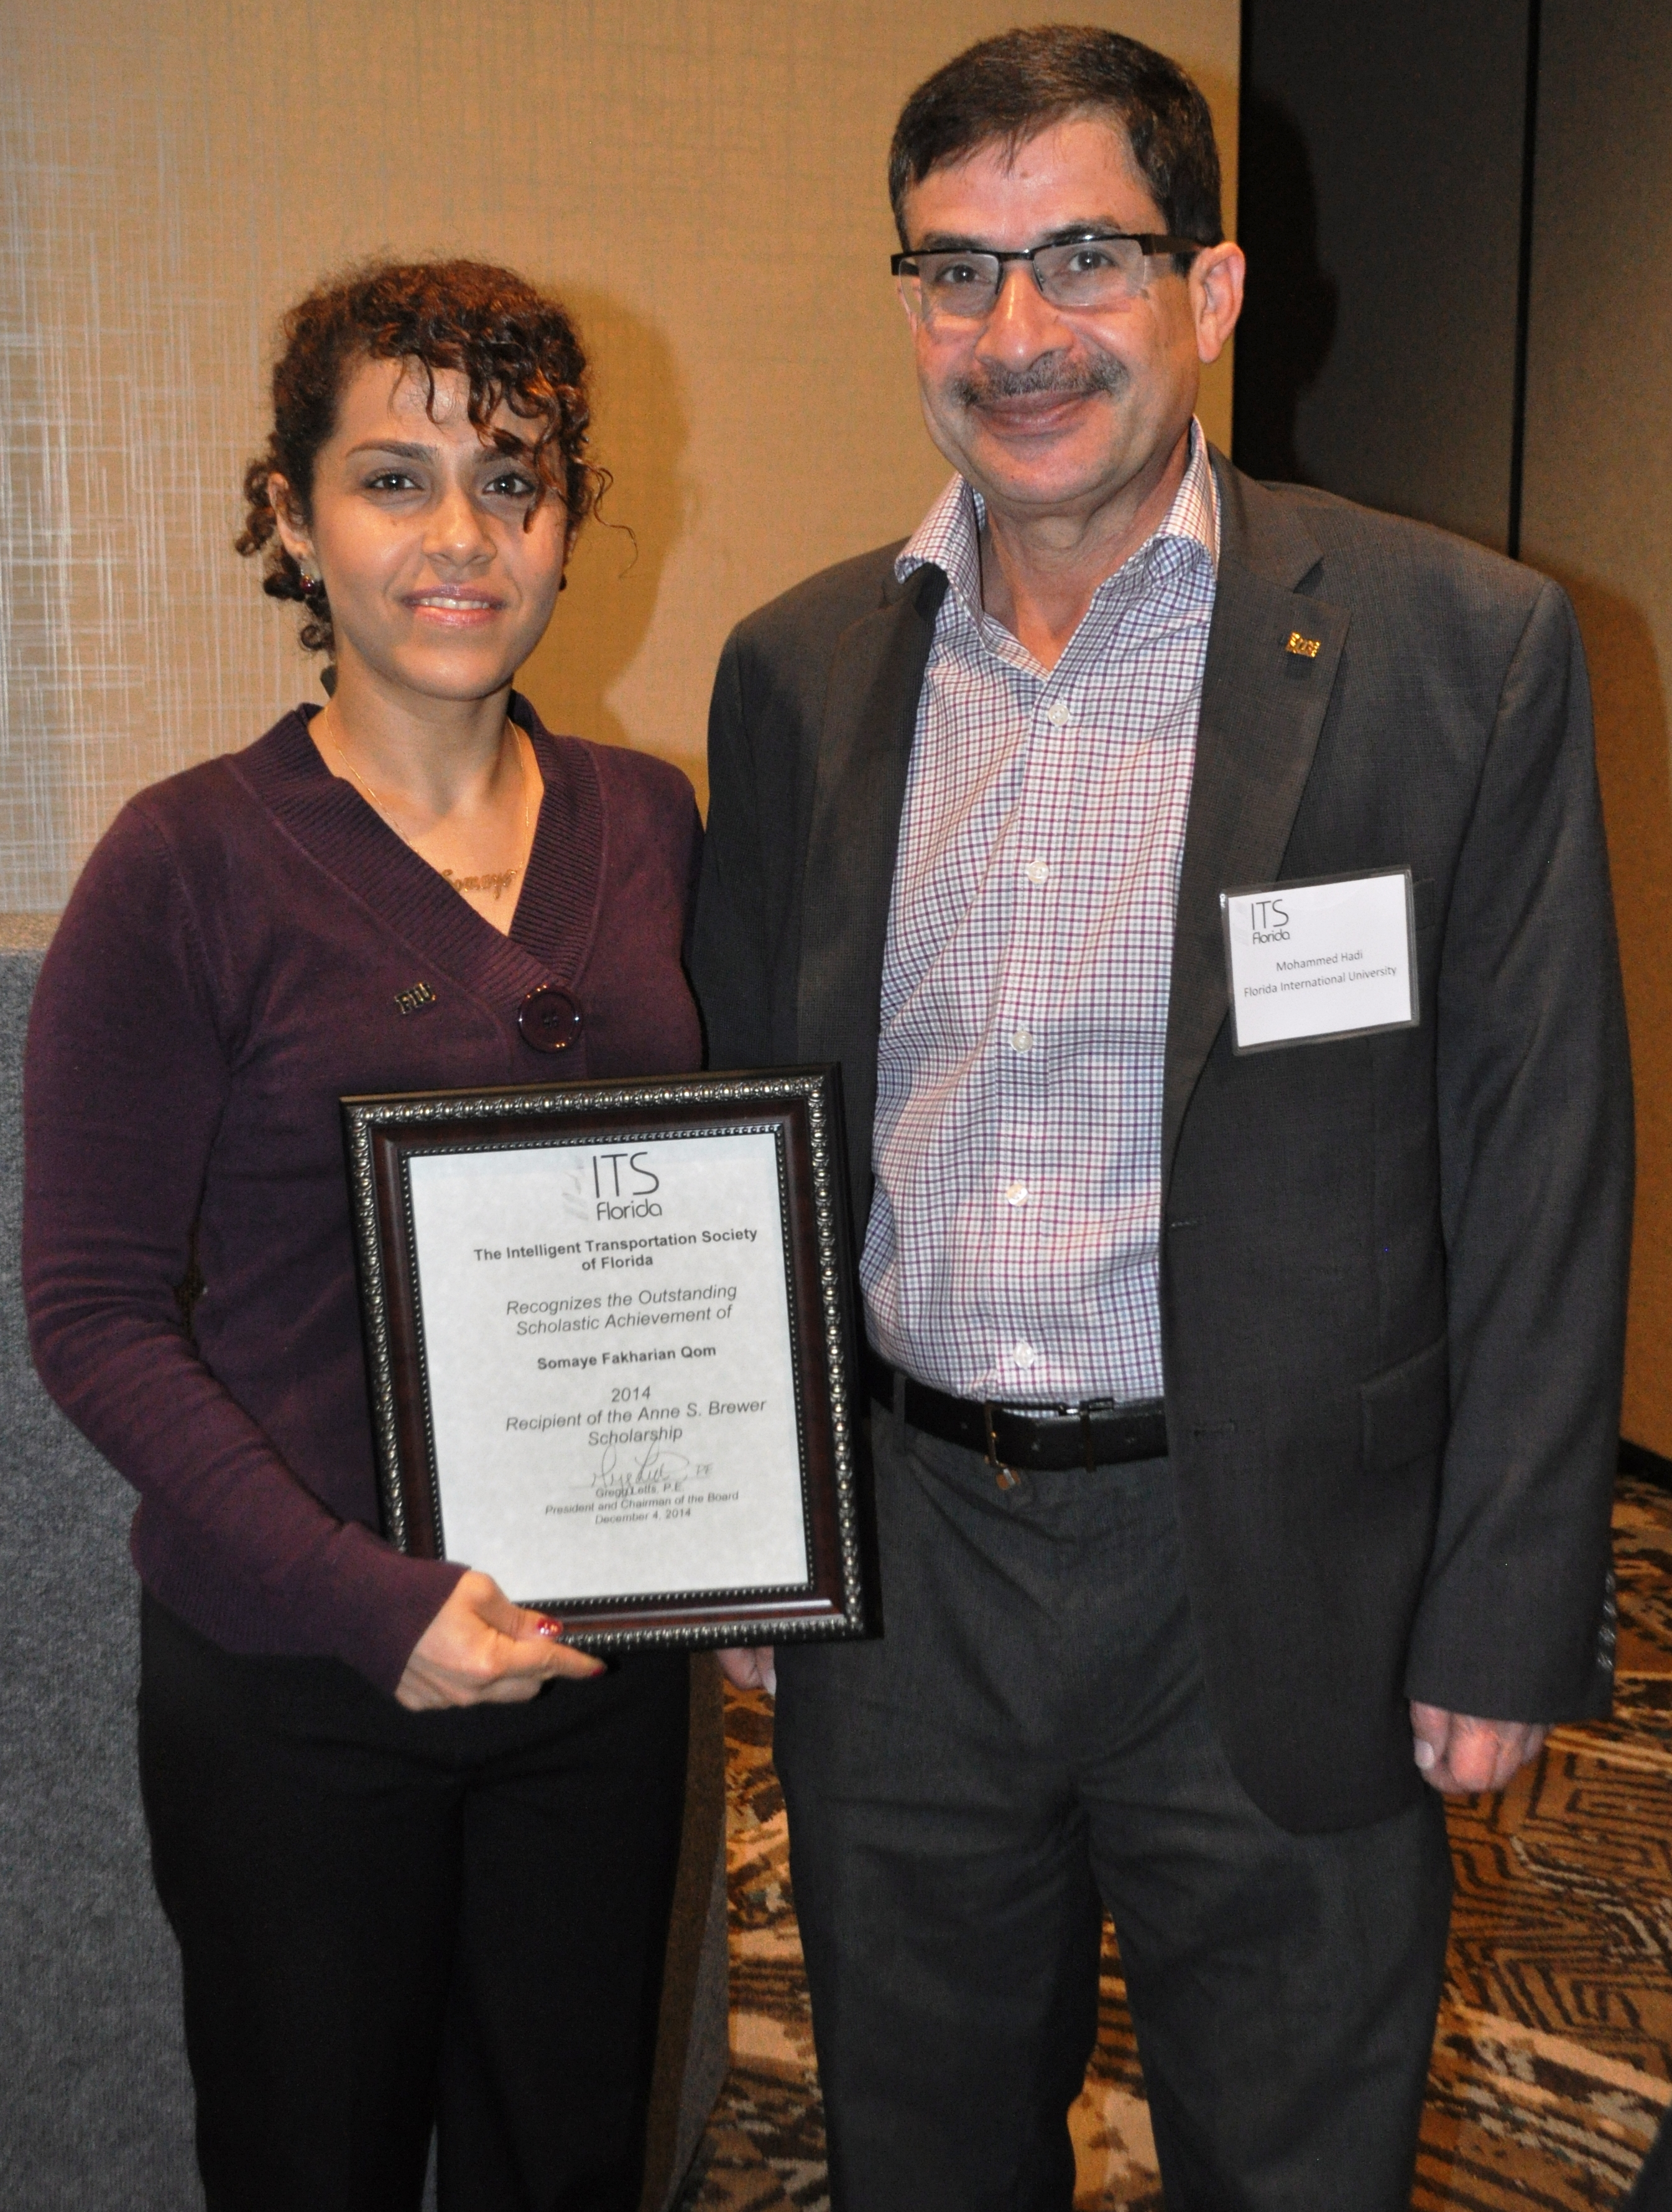 Outstanding scholastic achievement Award, Intelligent Transportation Society of Florida, December 2014 (Somaue Fakharian Qom and Dr. Mohammed Hadi)